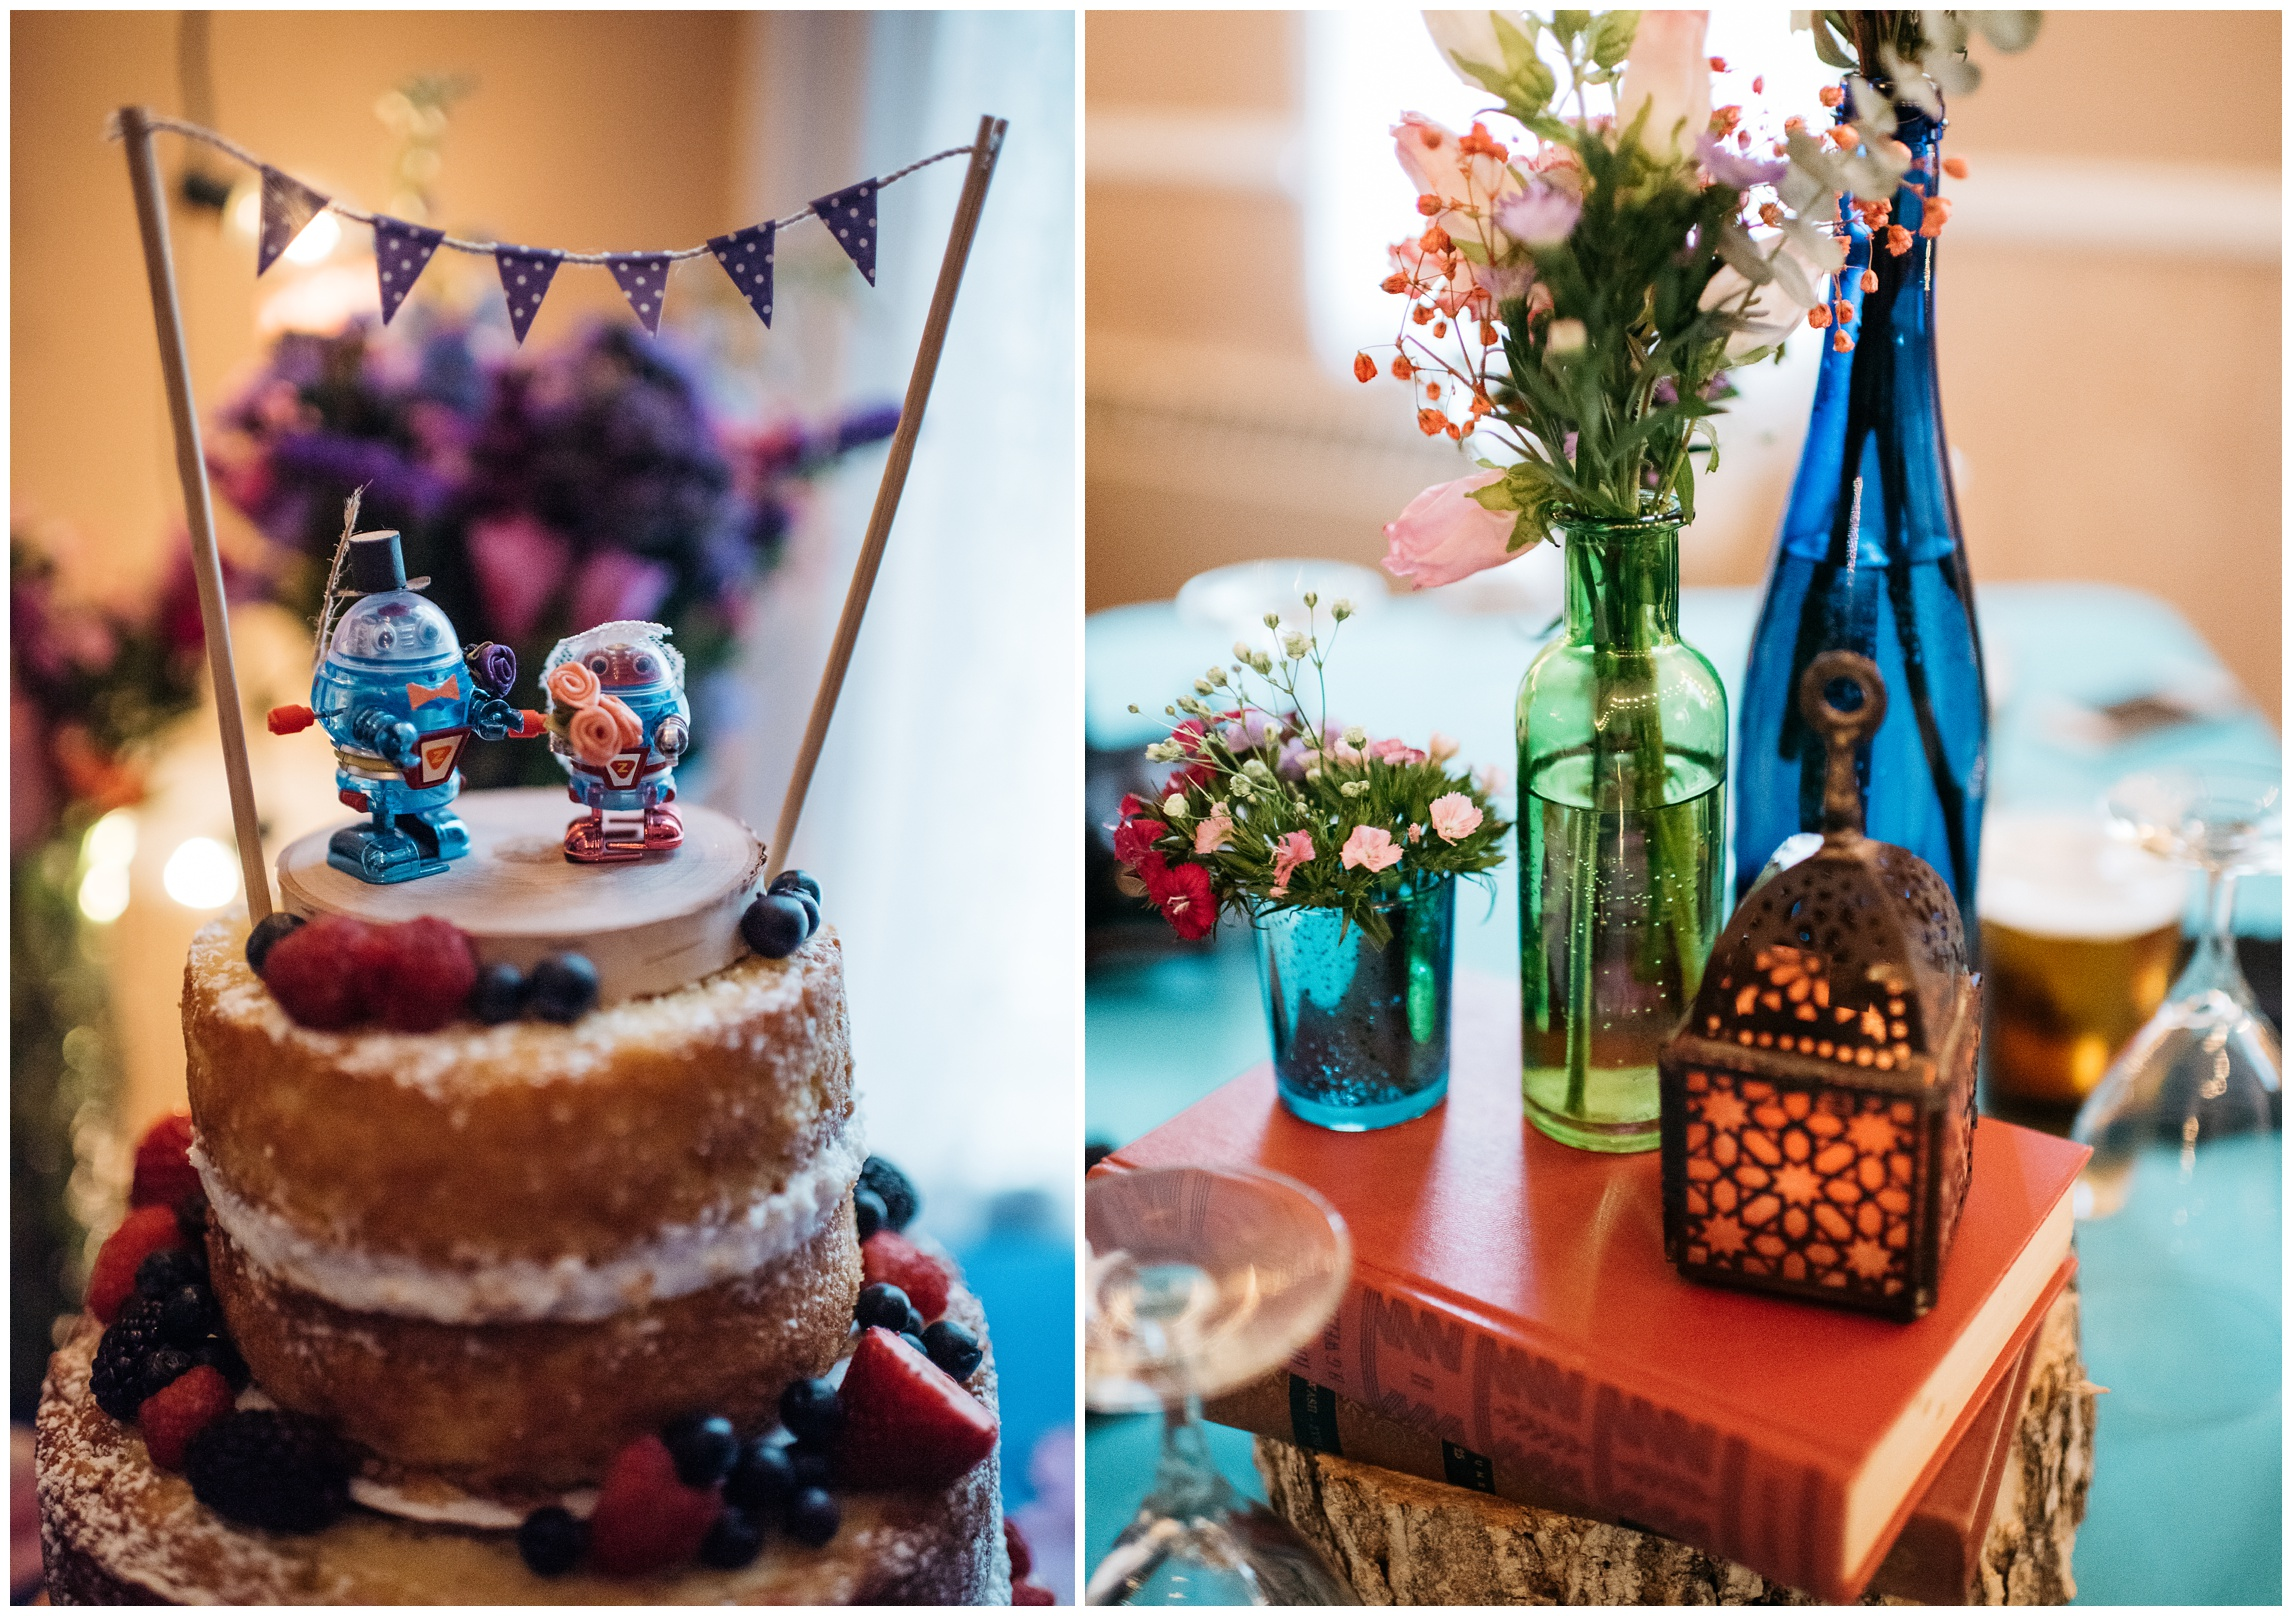 Wind up robot toys are used for a cake topper at this Georgetown, Colorado wedding. Wedding photography by Sonja Salzburg of Sonja K Photography.